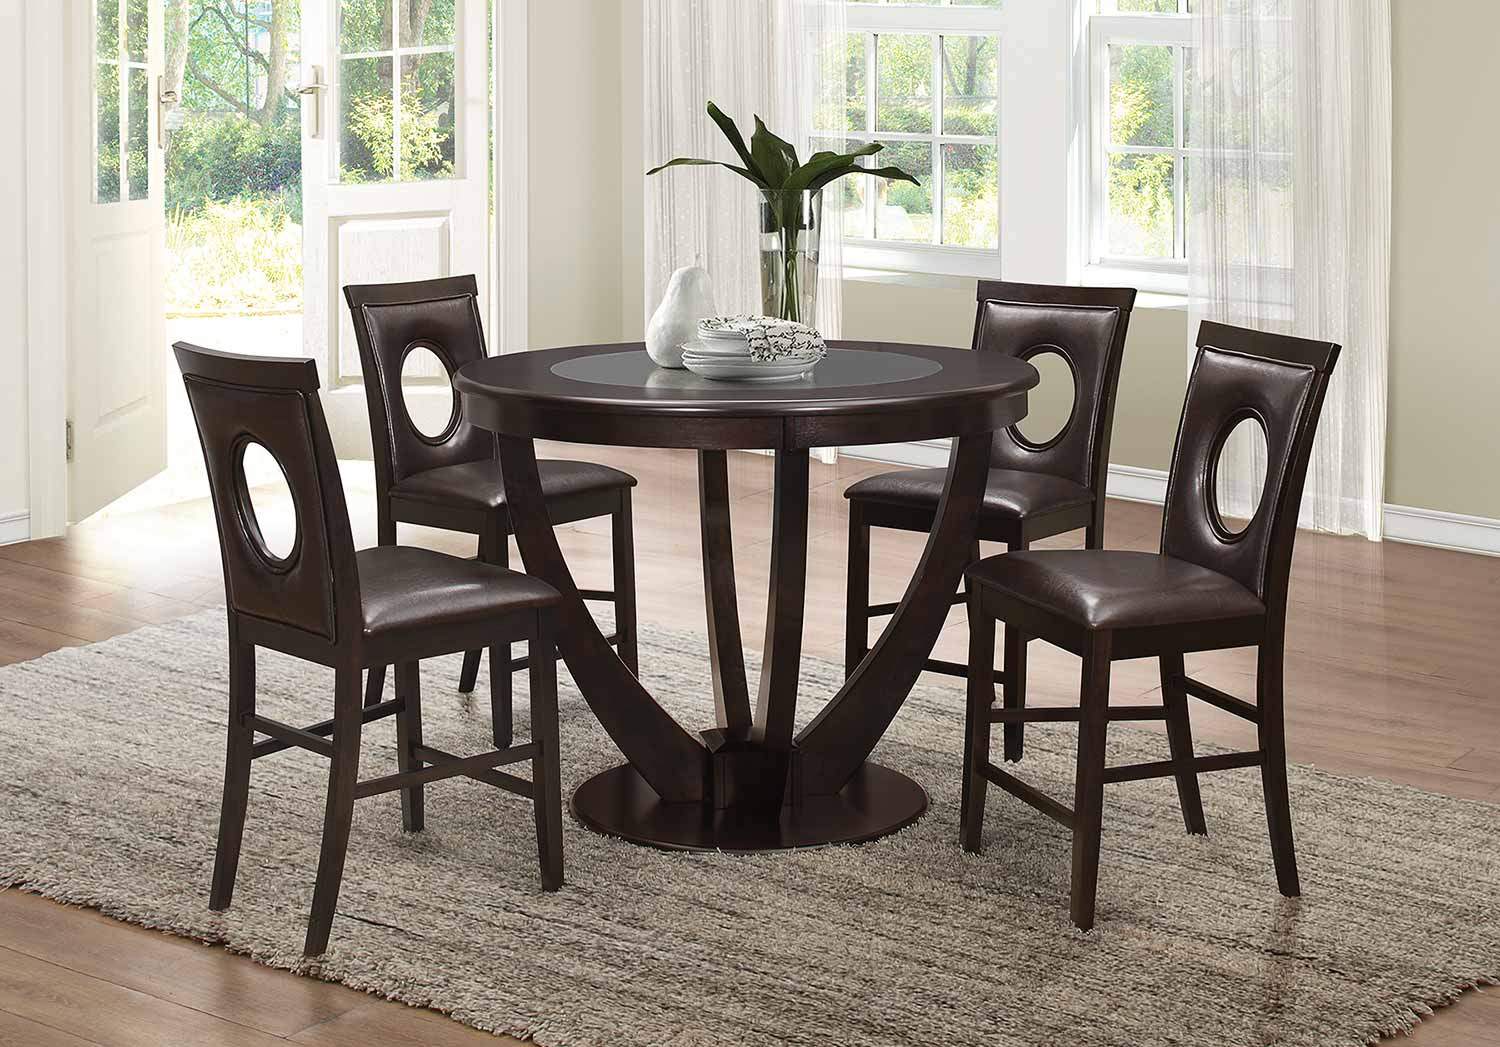 Coaster Stapleton Counter Height Round Glass Dining Set - Cappuccino